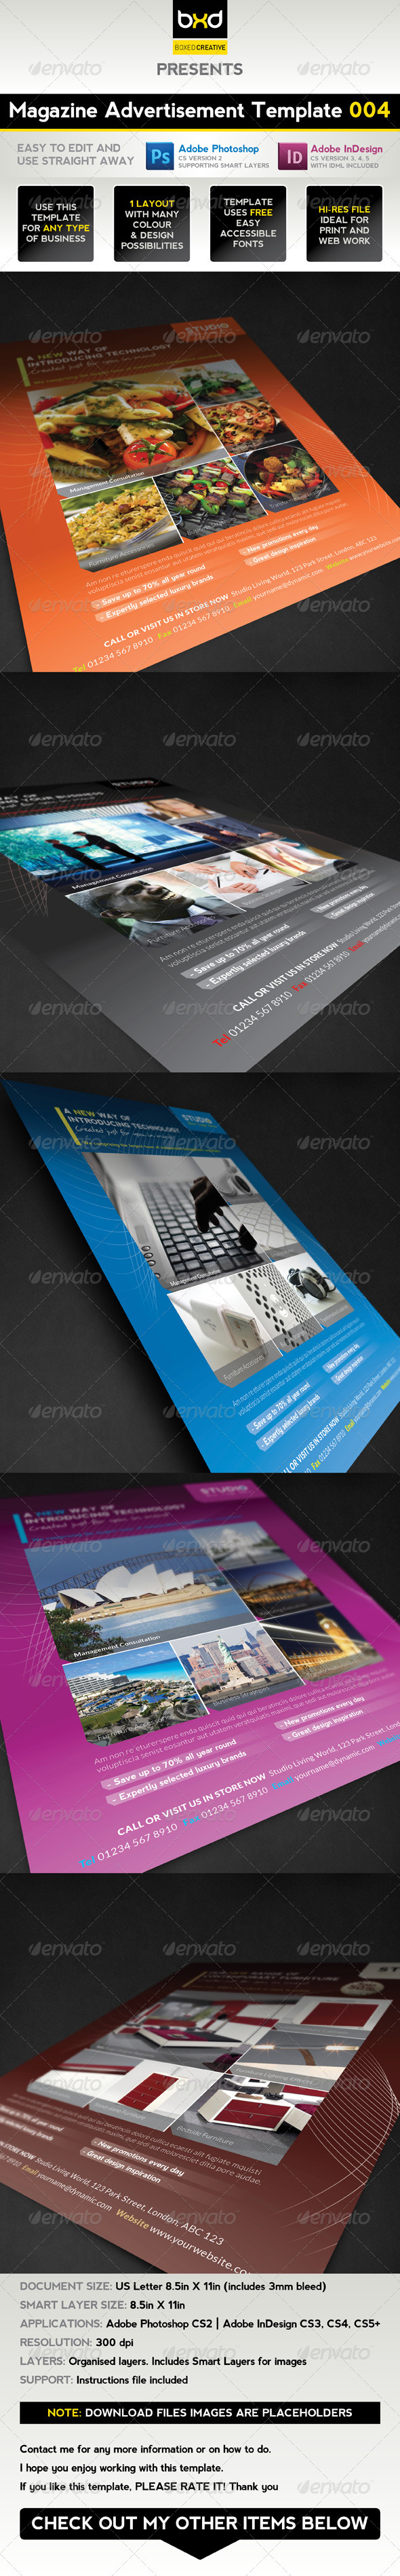 Magazine Advert Template 004 - Magazines Print Templates